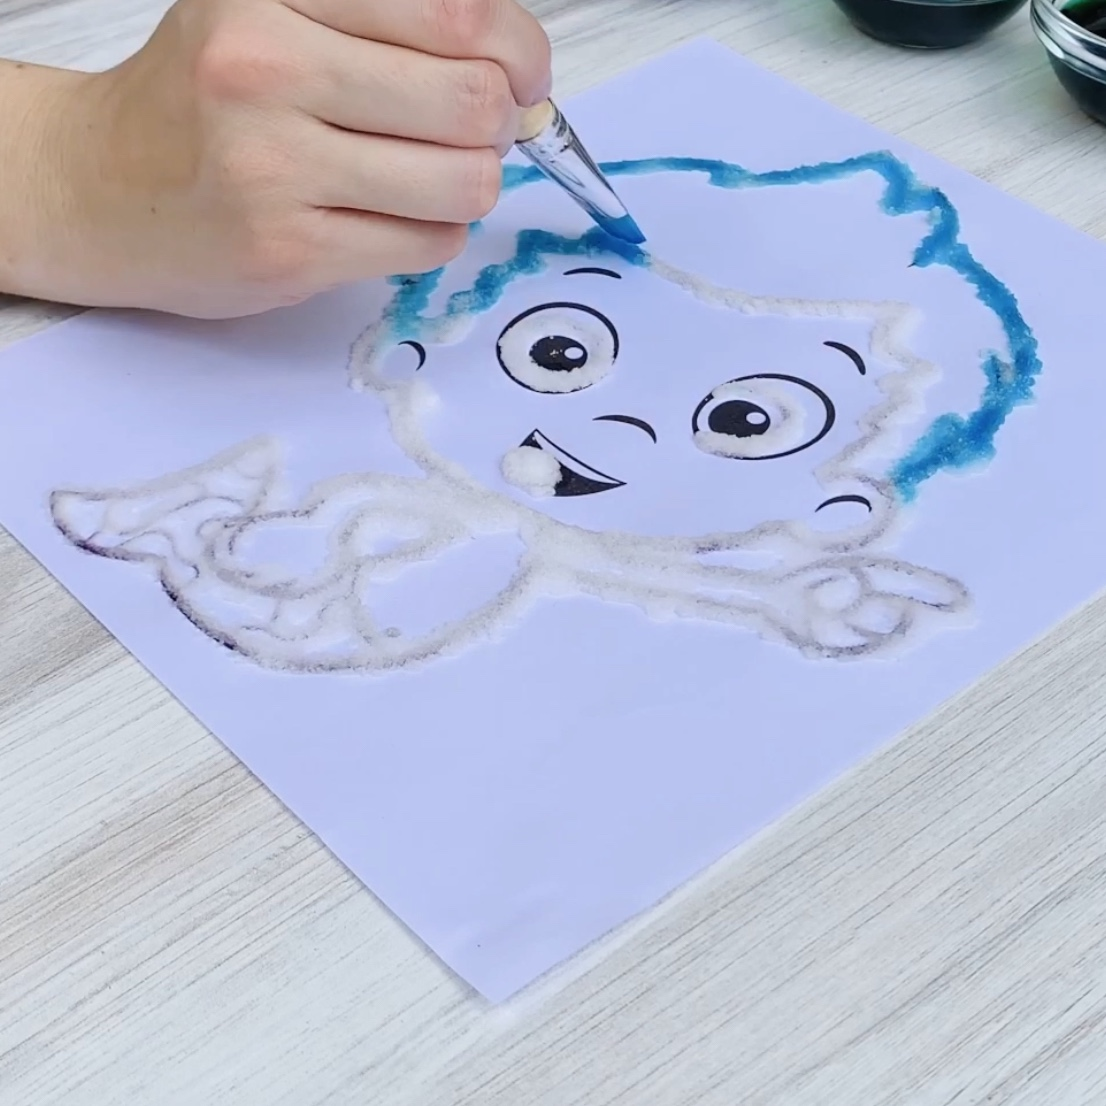 Bubble Guppies Salt Painting Step 4